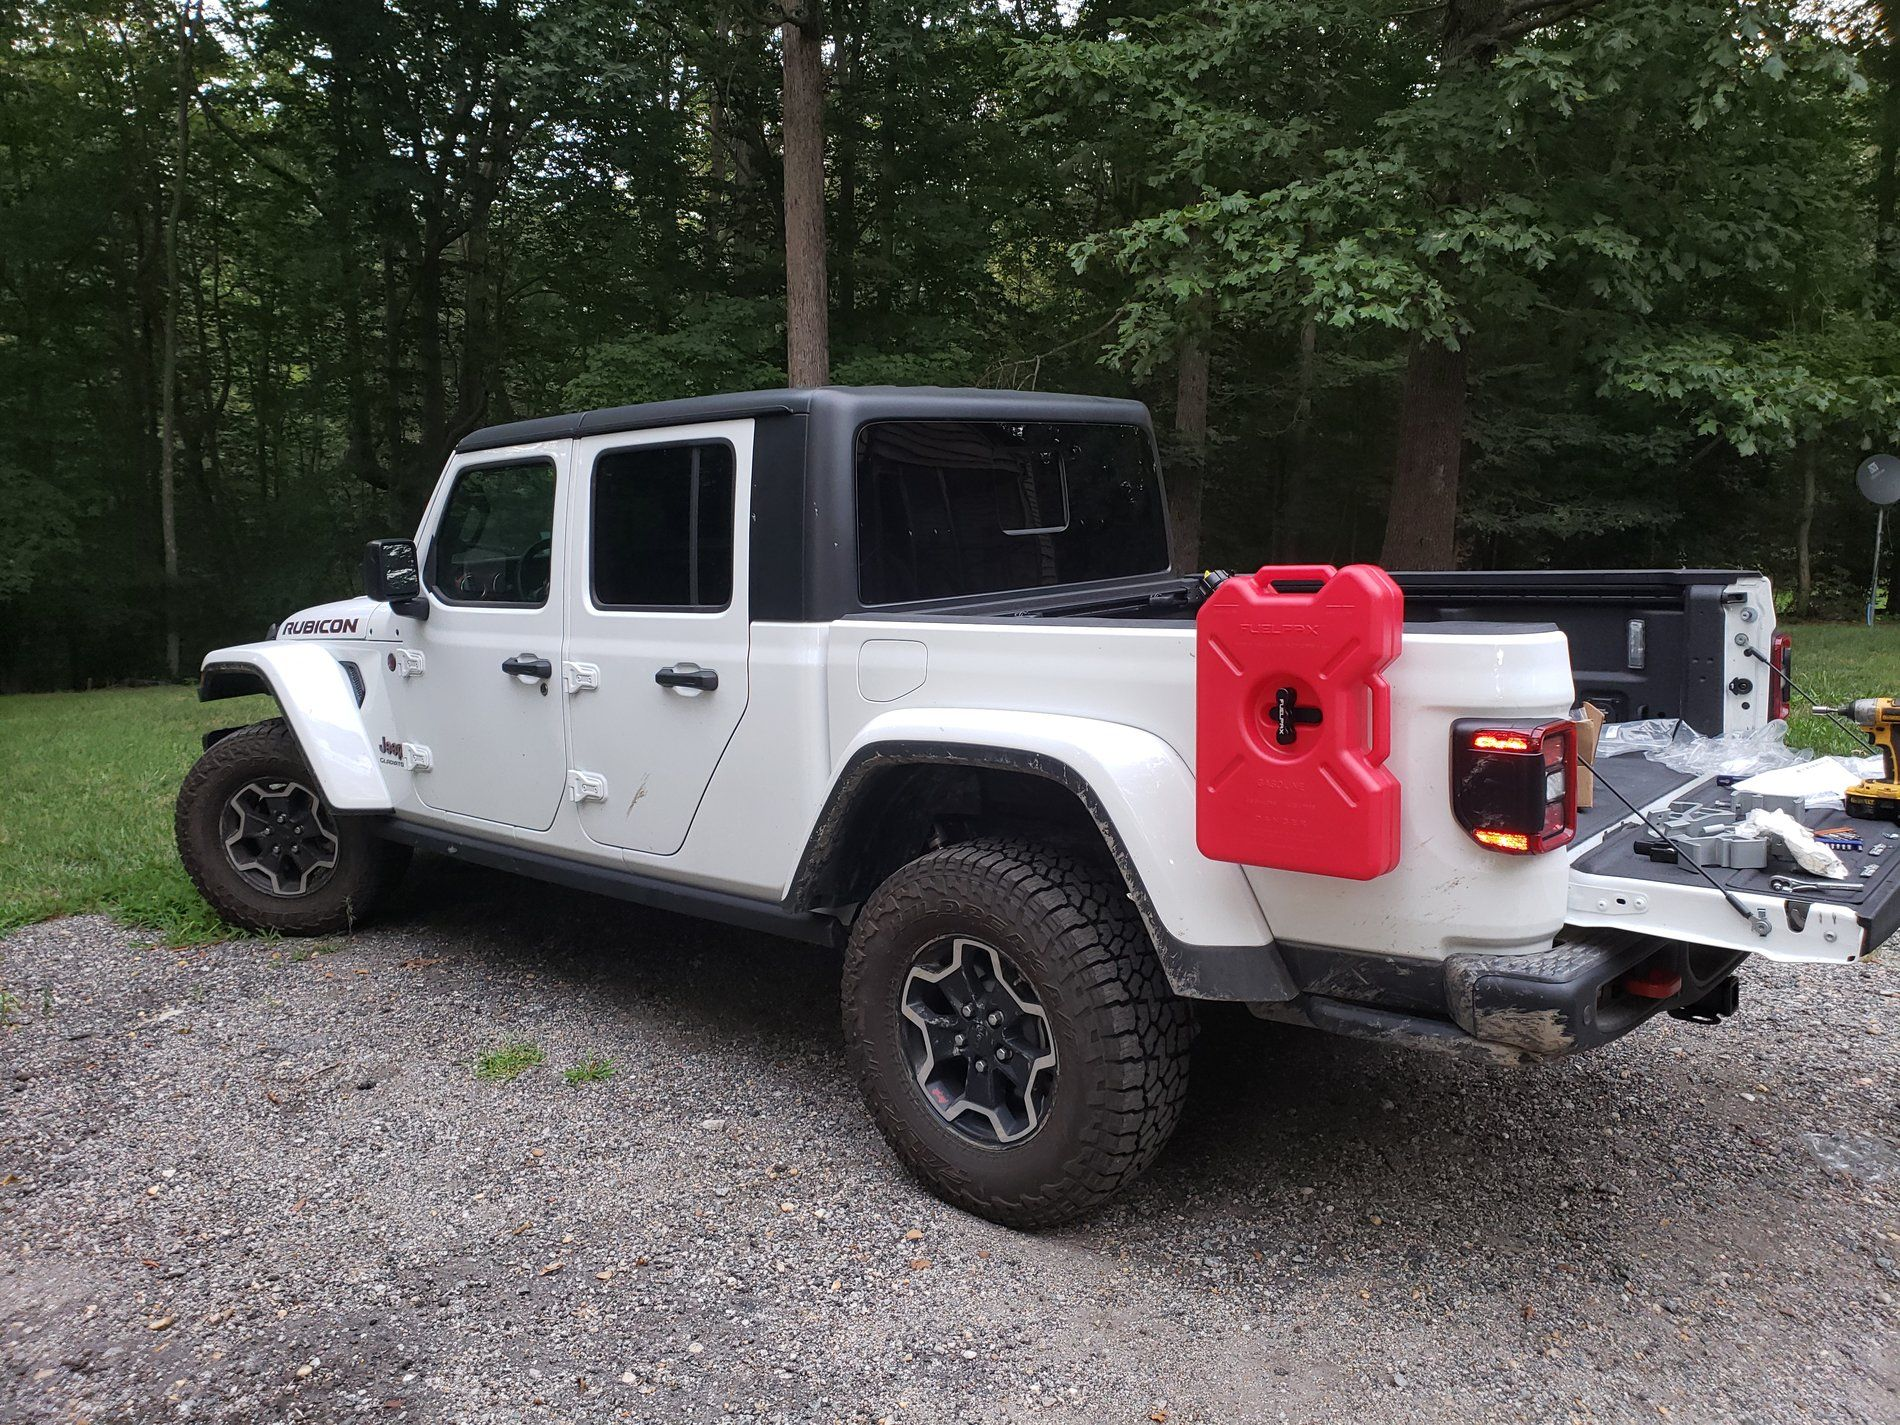 Pin By Dh On Jeep Gladiator In 2020 Jeep Truck Bed Tool Boxes